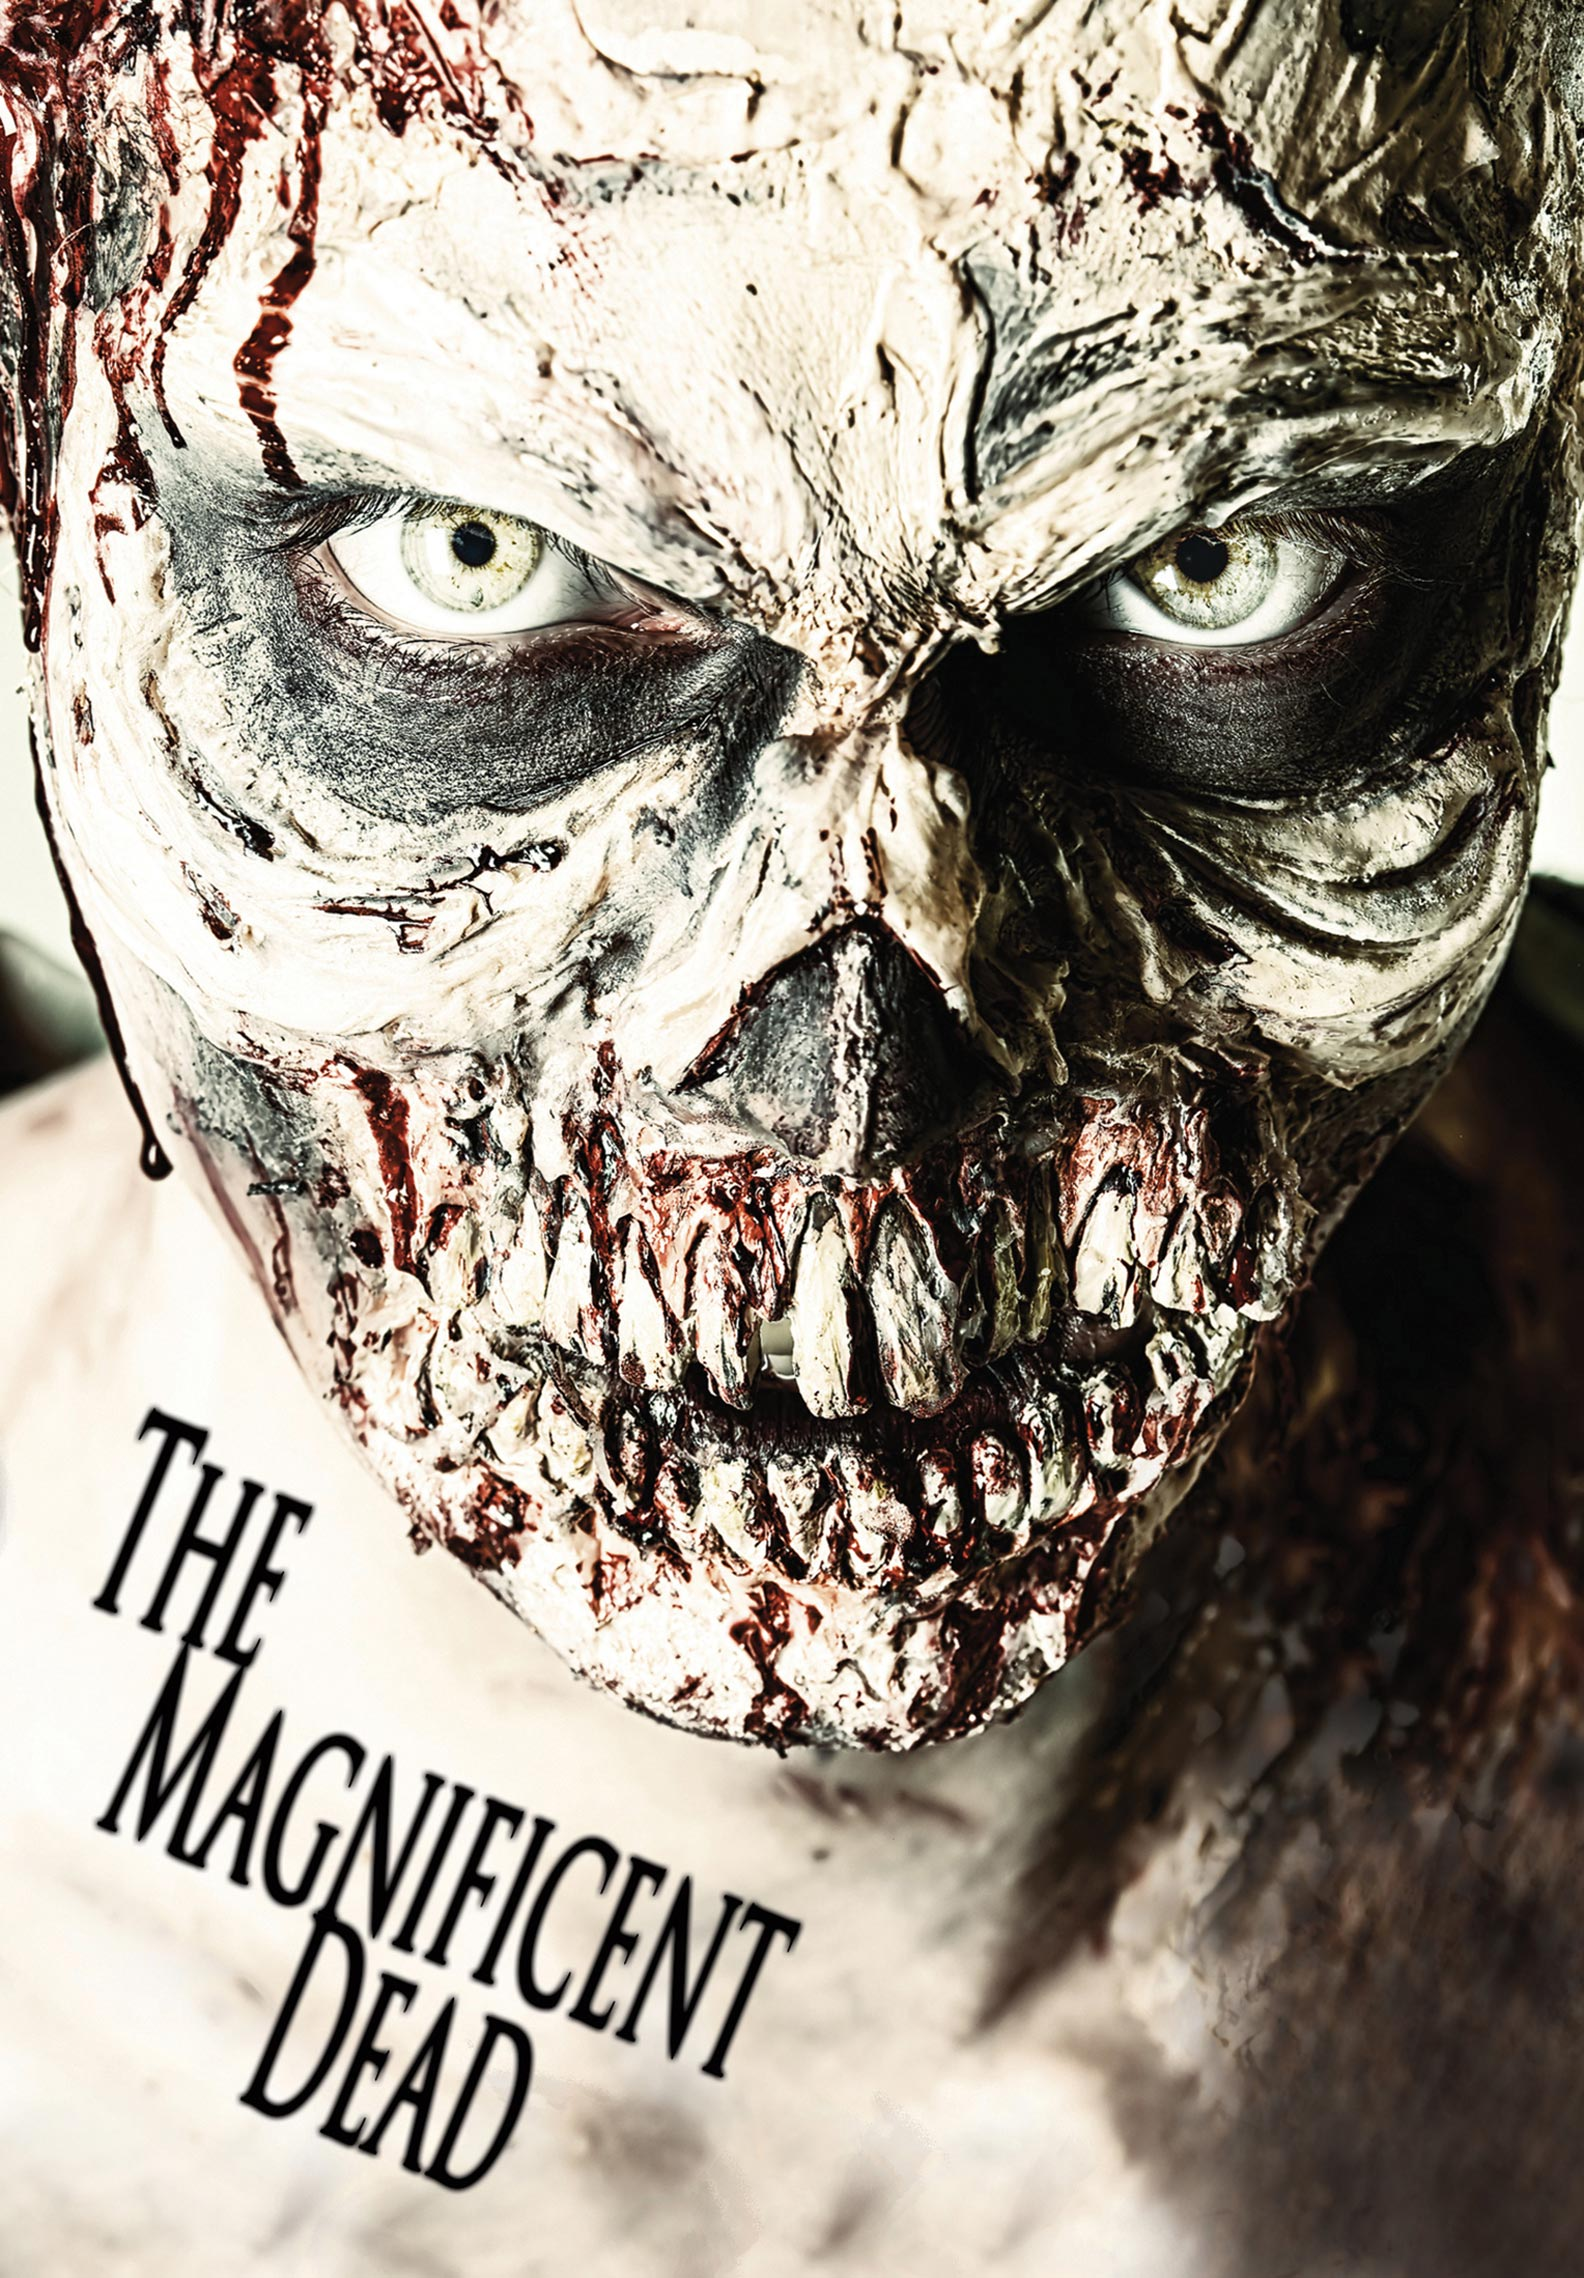 The Magnificent Dead Poster #1